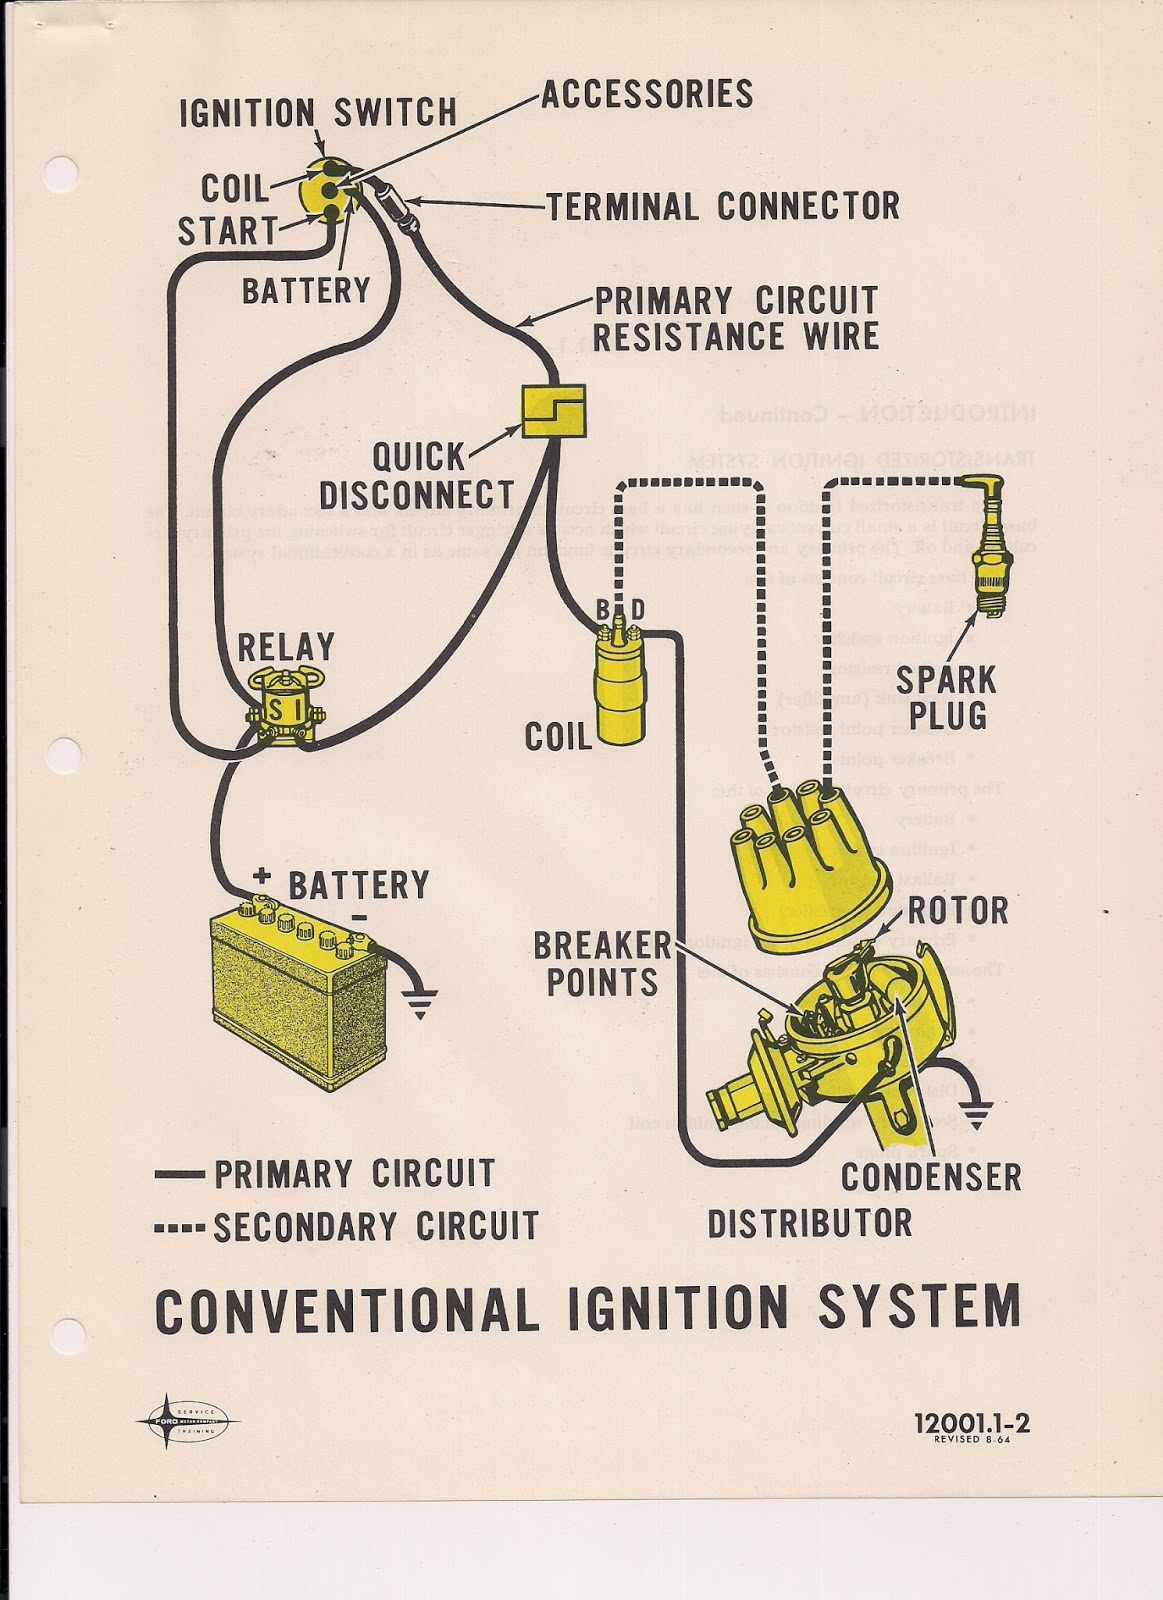 1987 Jeep Wrangler Ignition Switch Wiring Diagram Great Design Of 1967 Mustang Coil 1957 Ford Yj